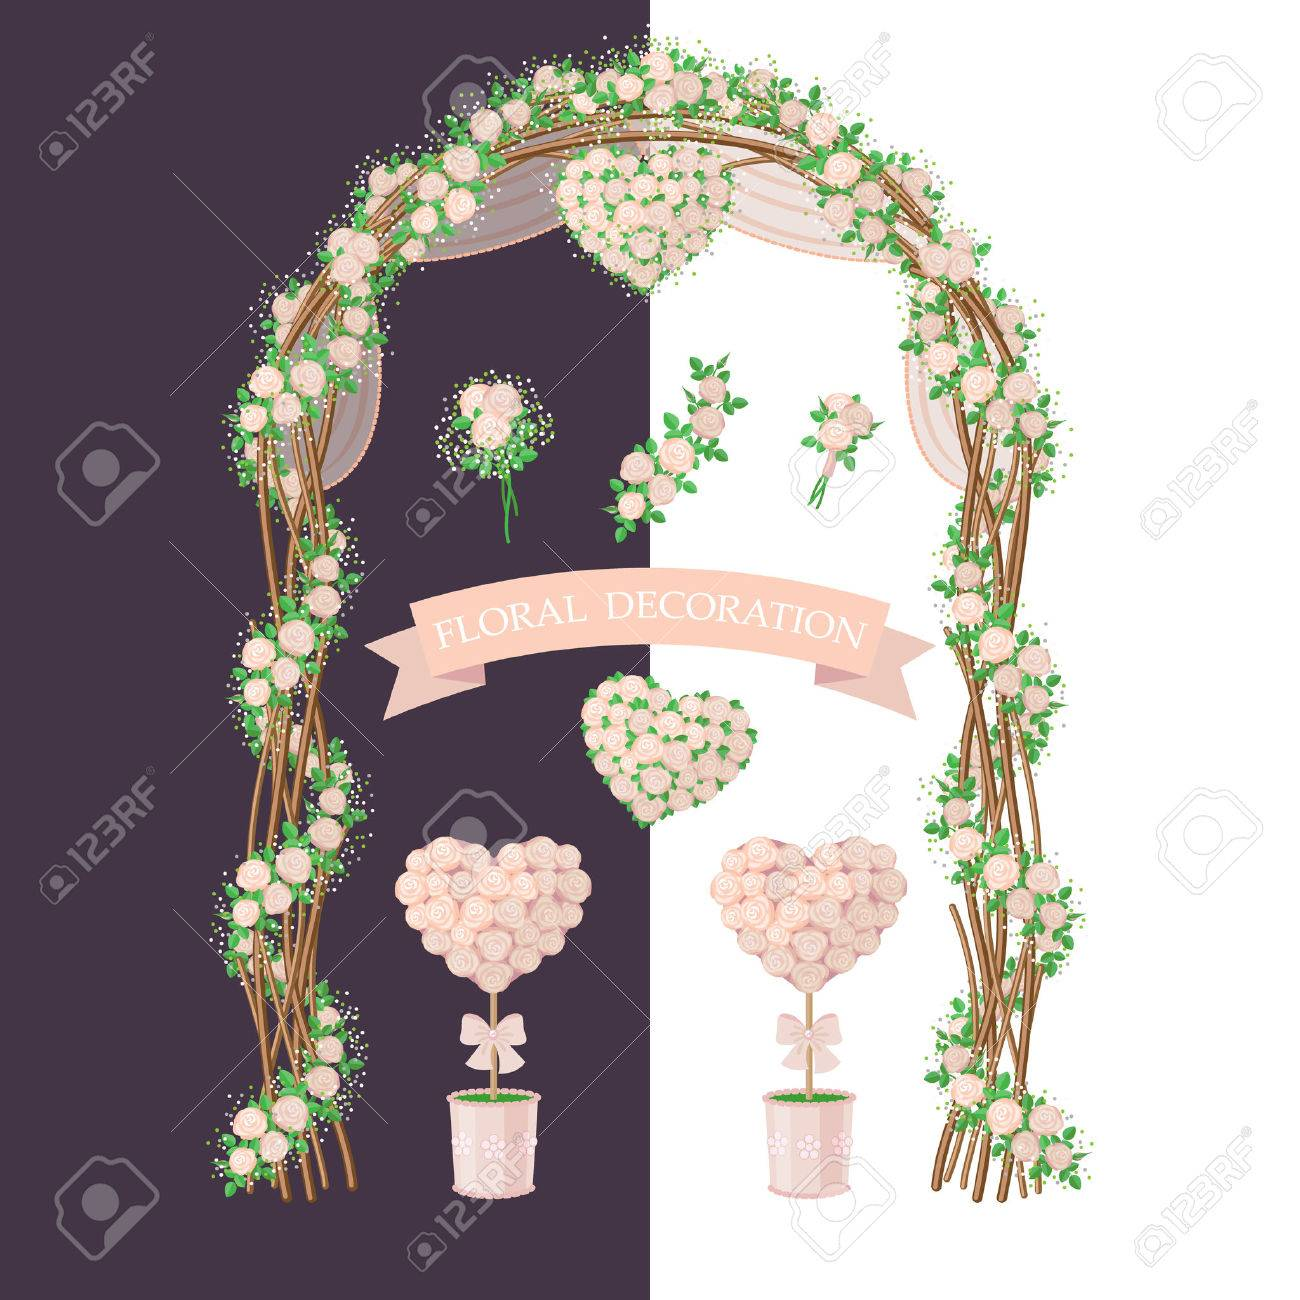 Simplified Image Of Arch Topiary Flower Heart And Bouquet Royalty Free Cliparts Vectors And Stock Illustration Image 47271229